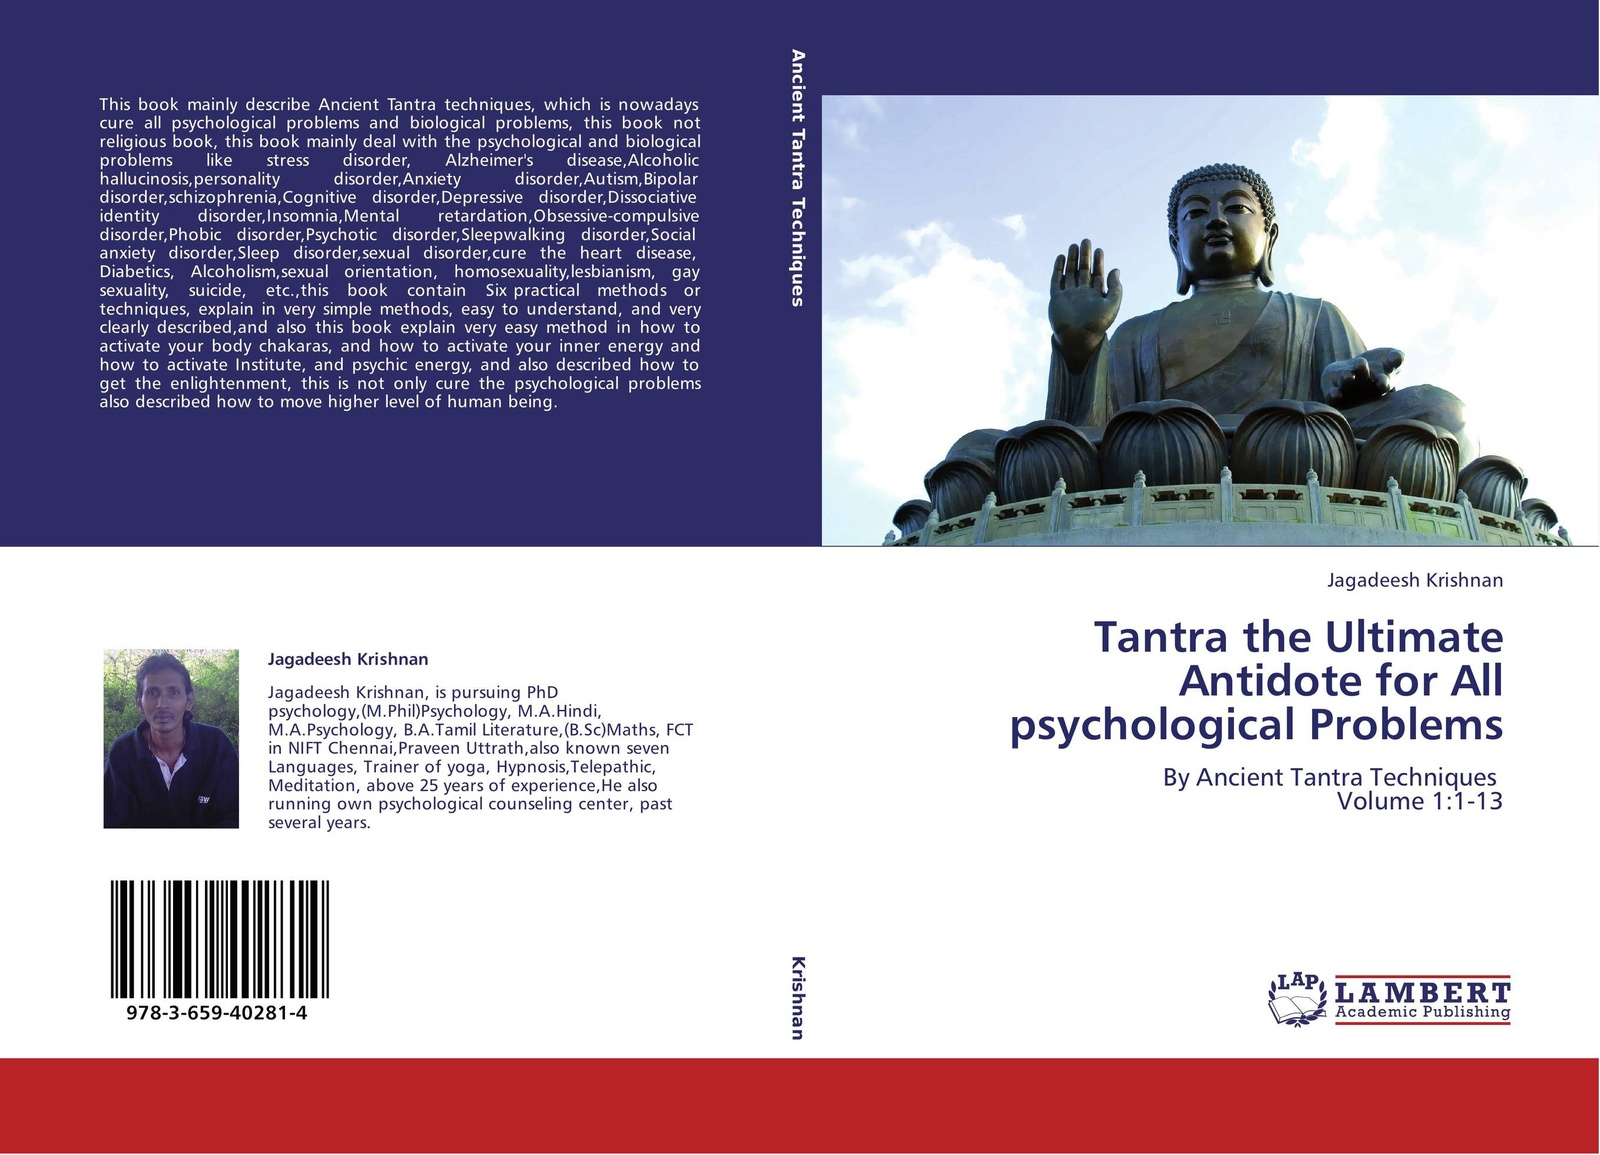 Jagadeesh Krishnan Tantra the Ultimate Antidote for All psychological Problems frueh christopher clinician s guide to posttraumatic stress disorder